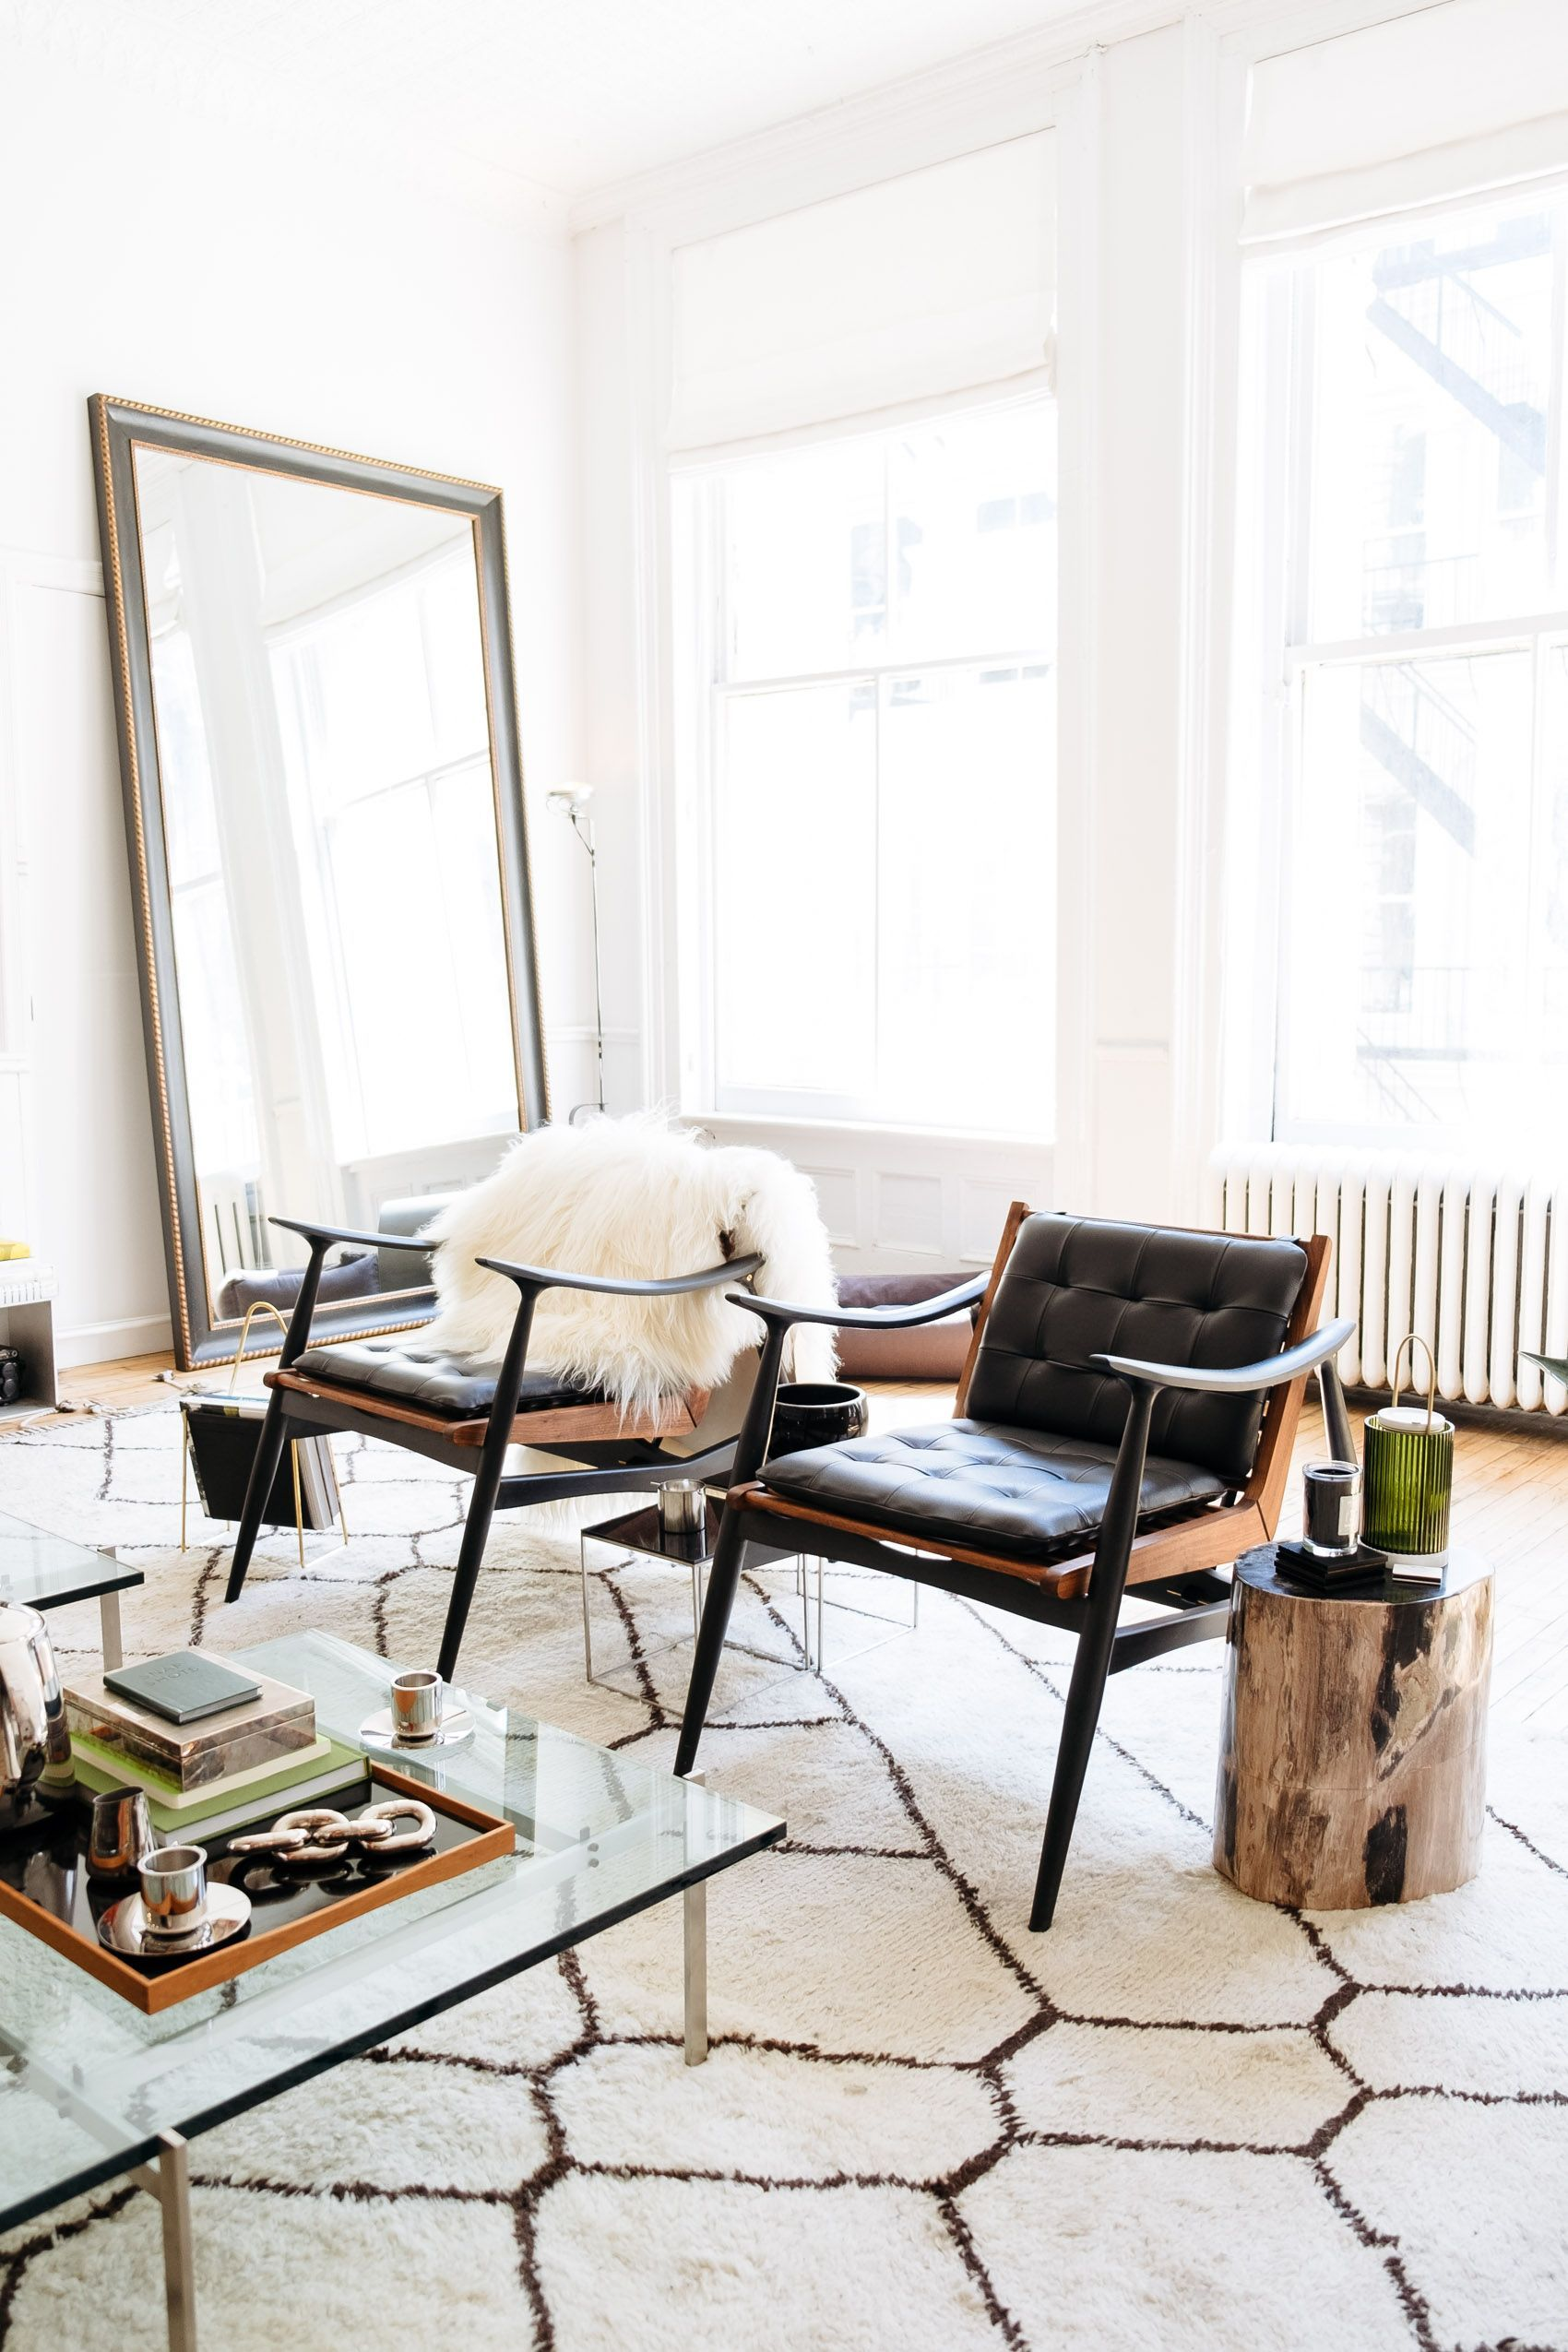 Captivating Bright Living Room With Chic Interior Decor At The Apartment By The Line In  Soho New